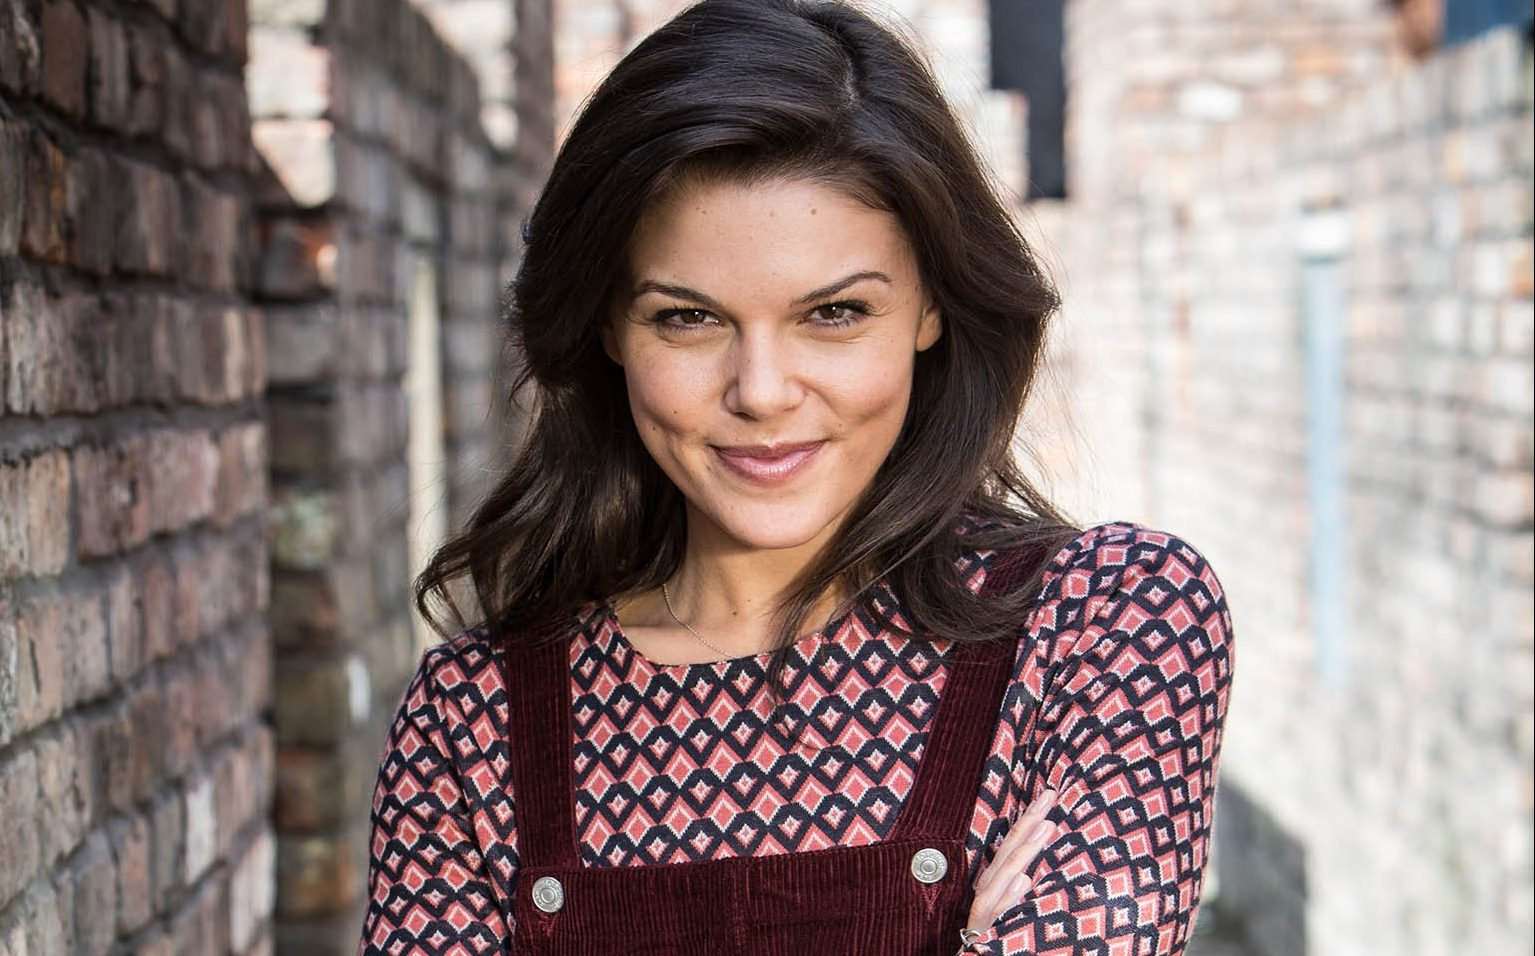 Who is Coronation Street star Faye Brookes and is she engaged to Gareth Gates?